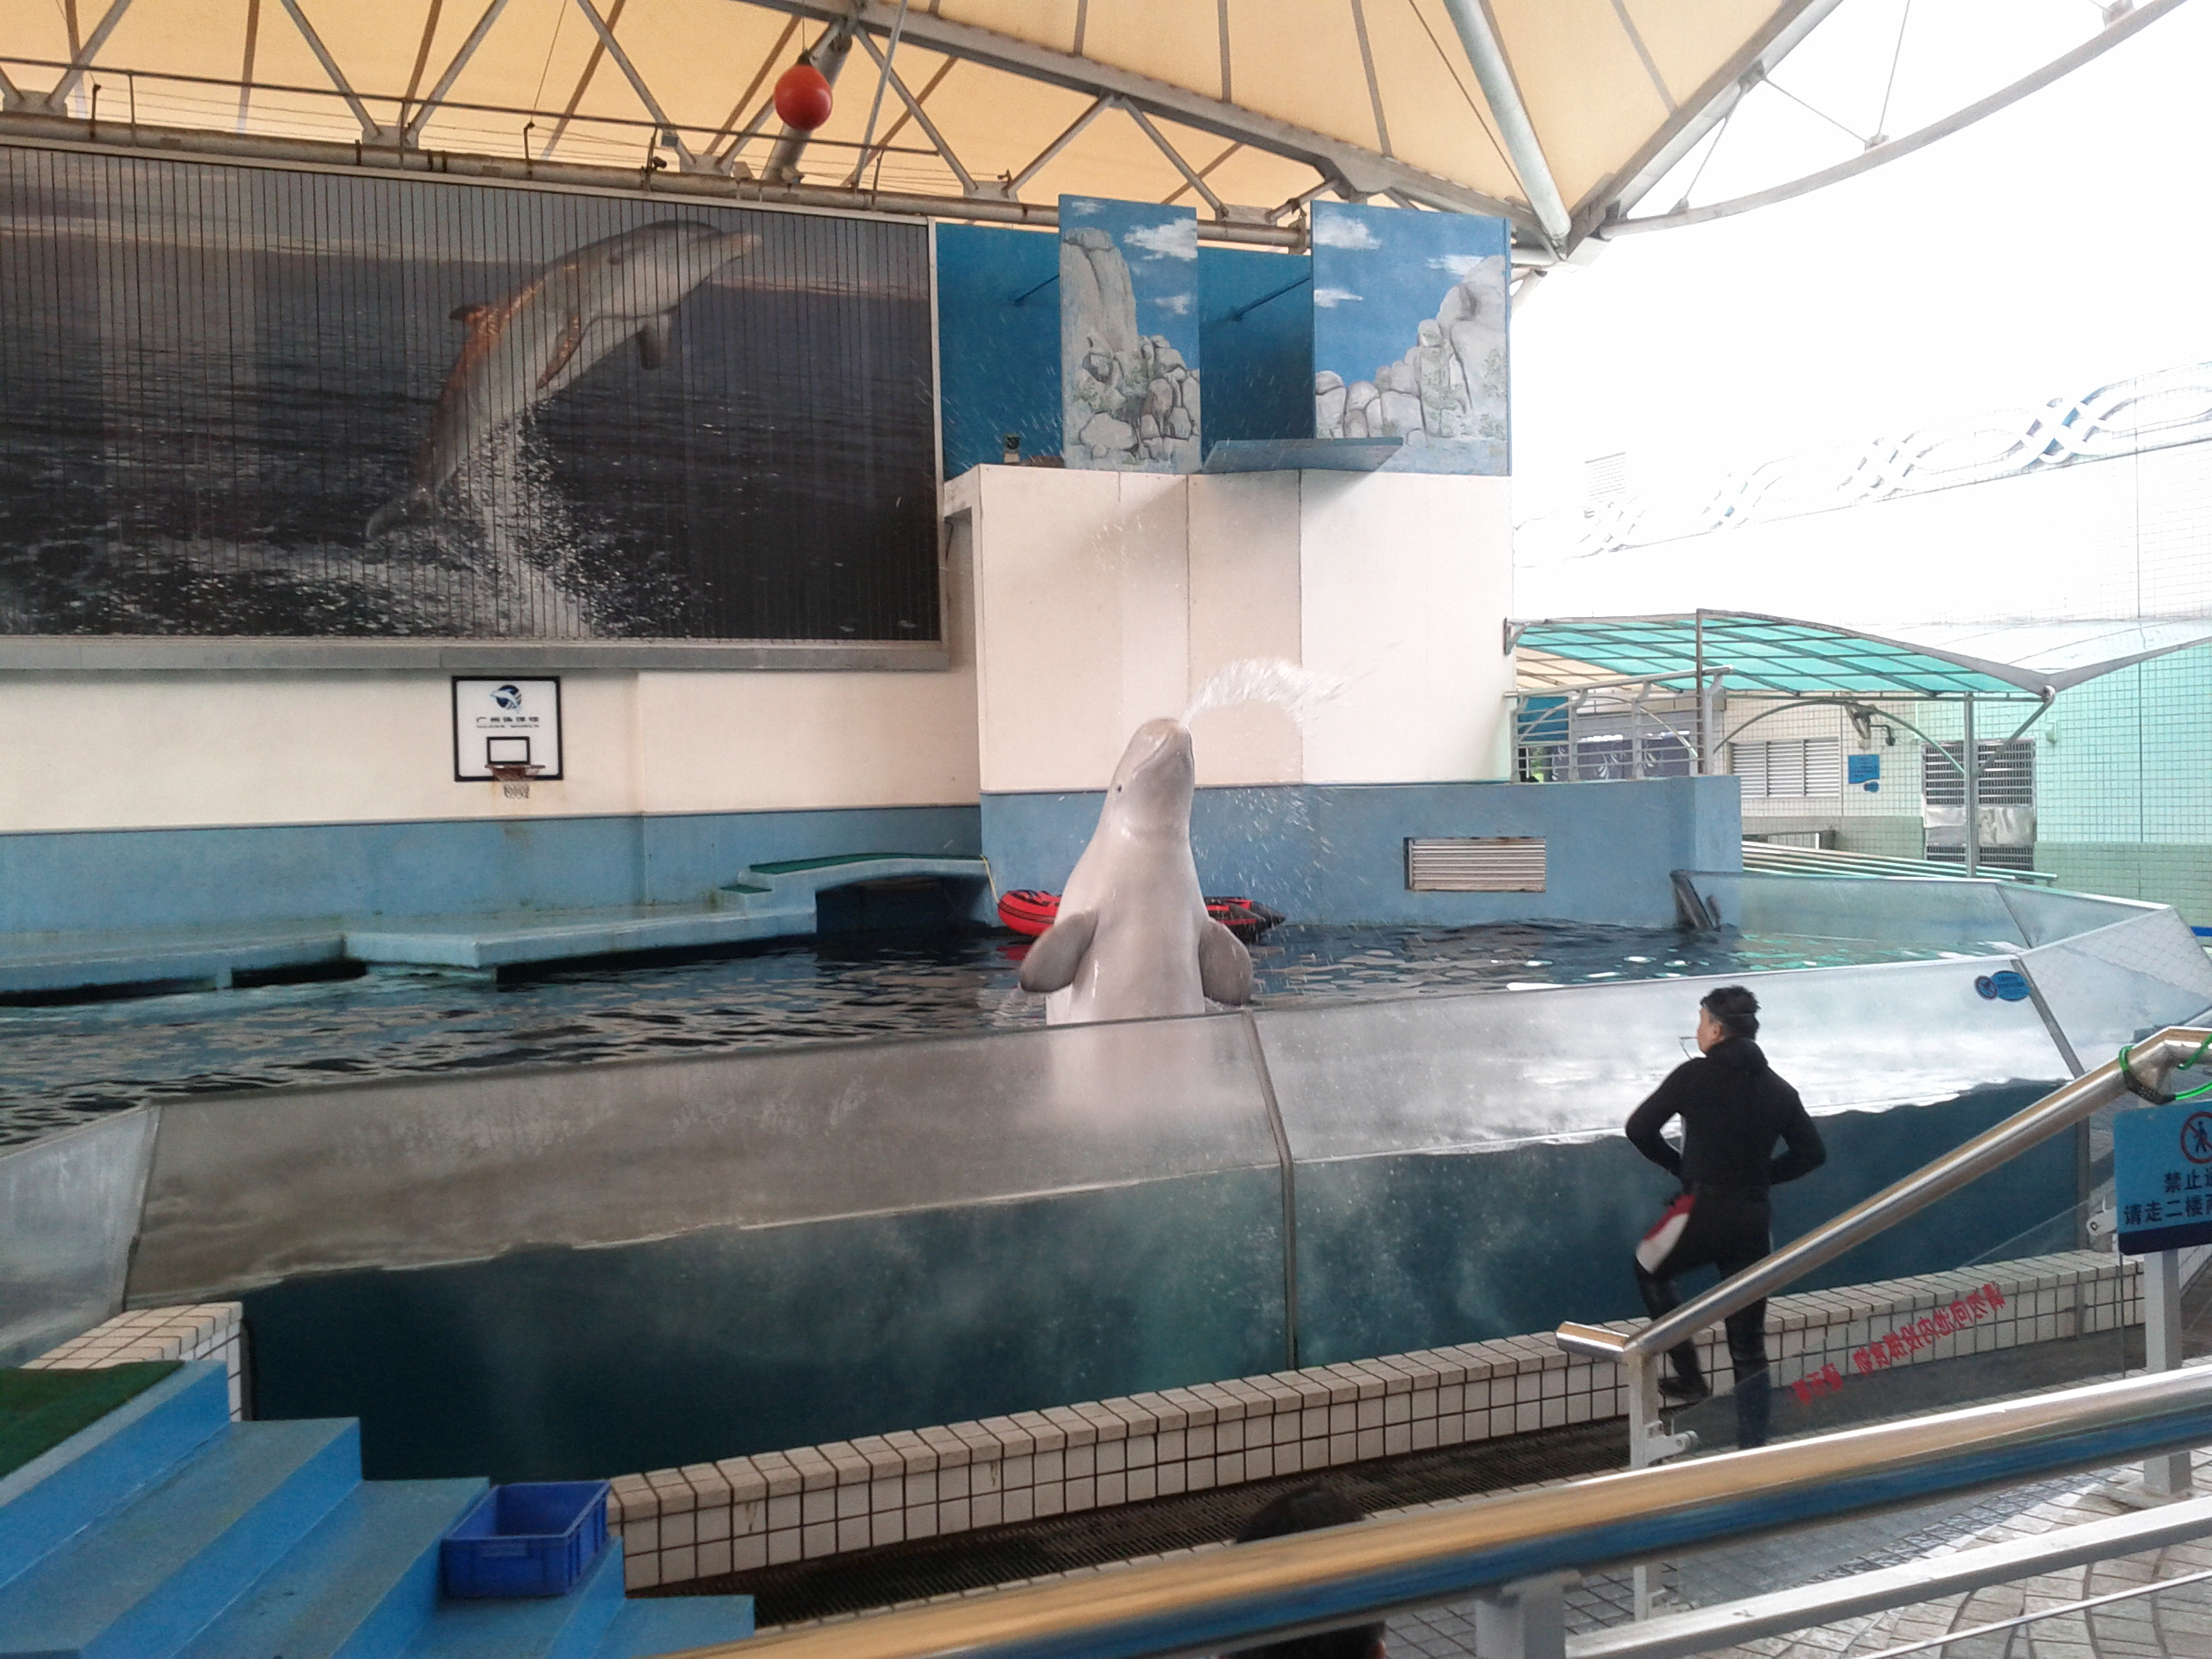 Beluga whale squirting water at Guangzhou zoo